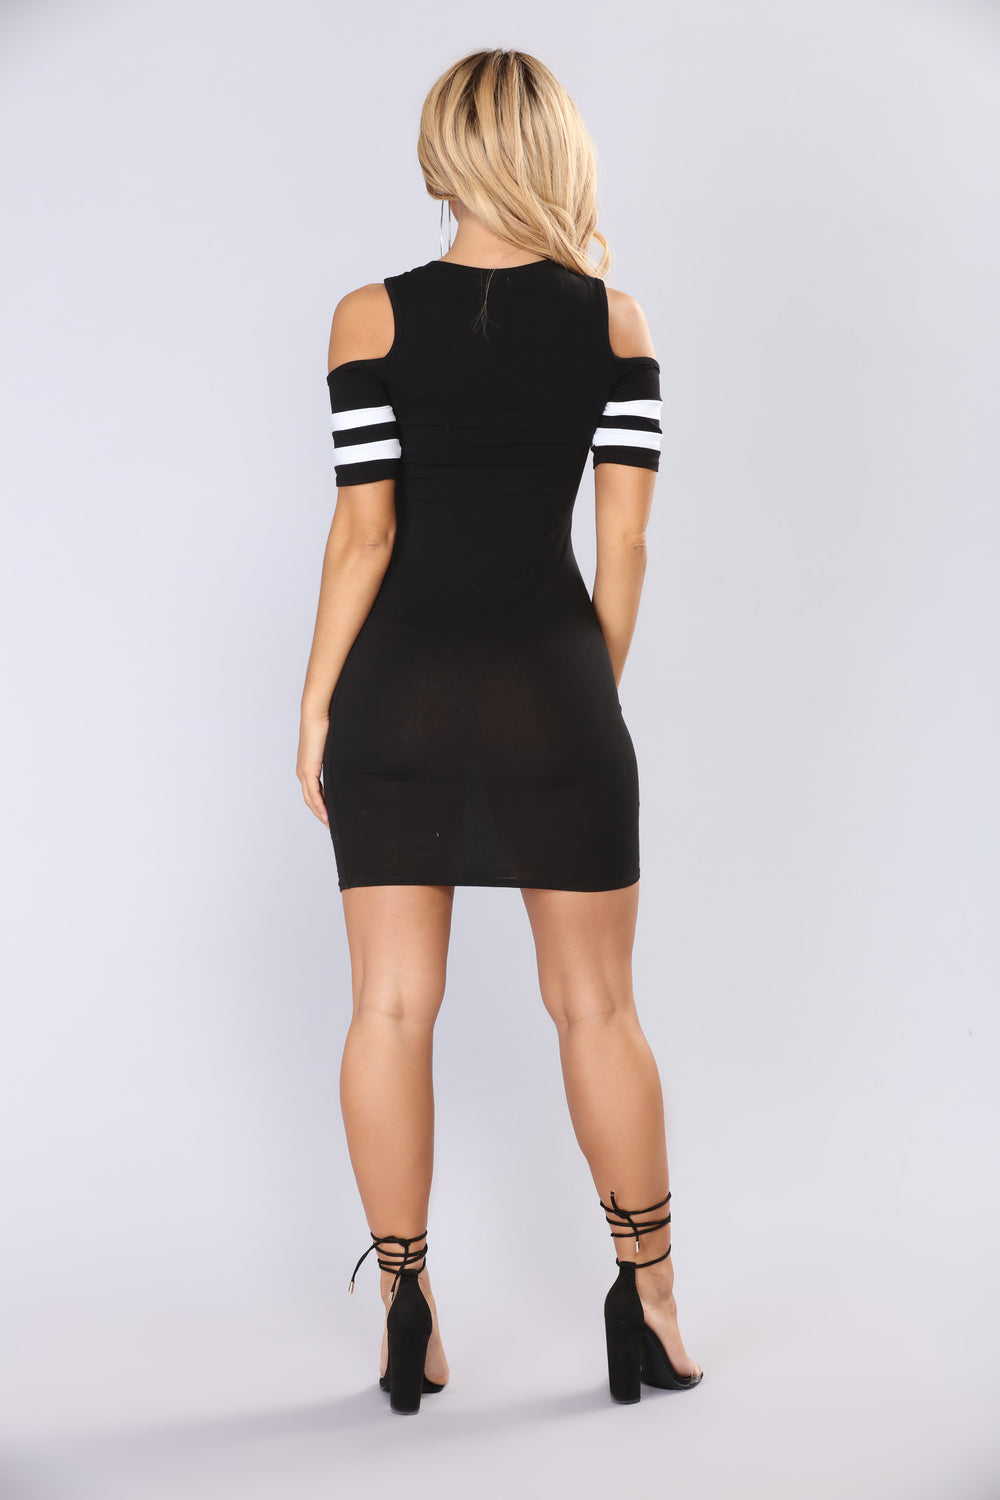 Force Field Cold Shoulder Dress - Black